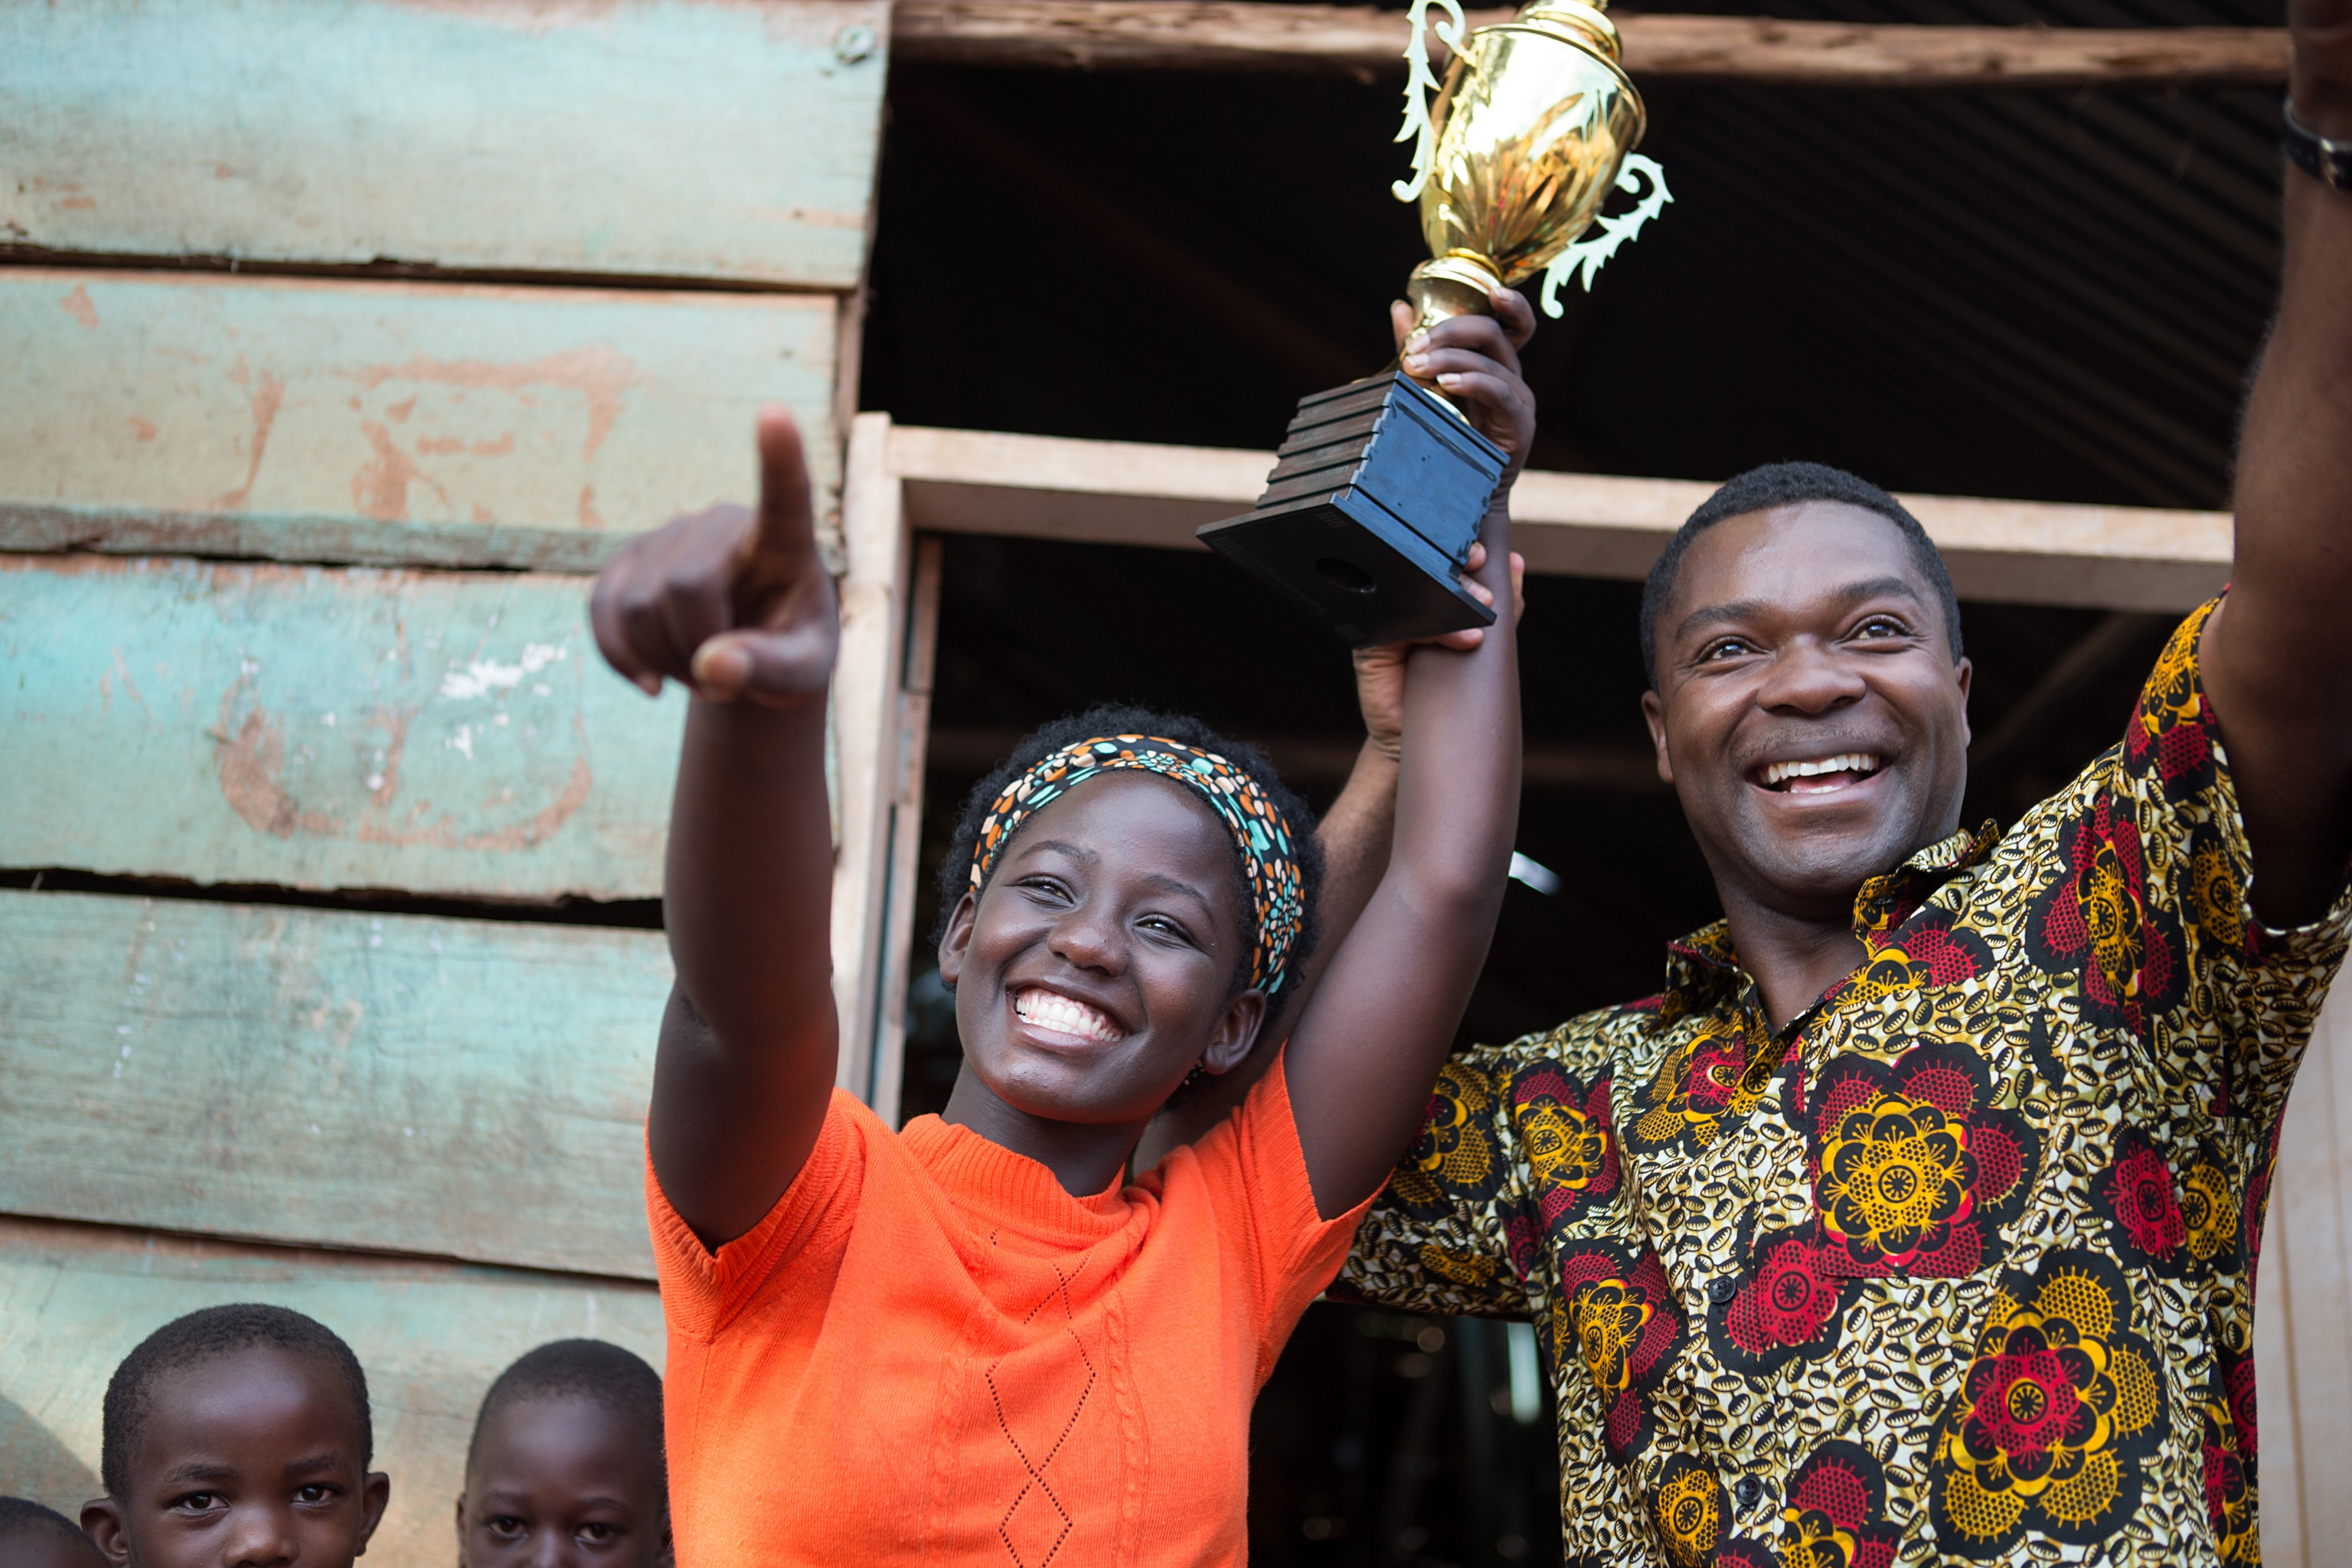 David Oyelowo is Robert Katende and Madina Nalwanga is Phiona Mutesi in in Disney's Queen of Katwe E, based on a true story of a young girl from the streets of rural Uganda whose world rapidly changes when she is introduced to the game of chess. Oscar (TM) winner Lupita Nyong'o also stars in the film, directed by Mira Nair.